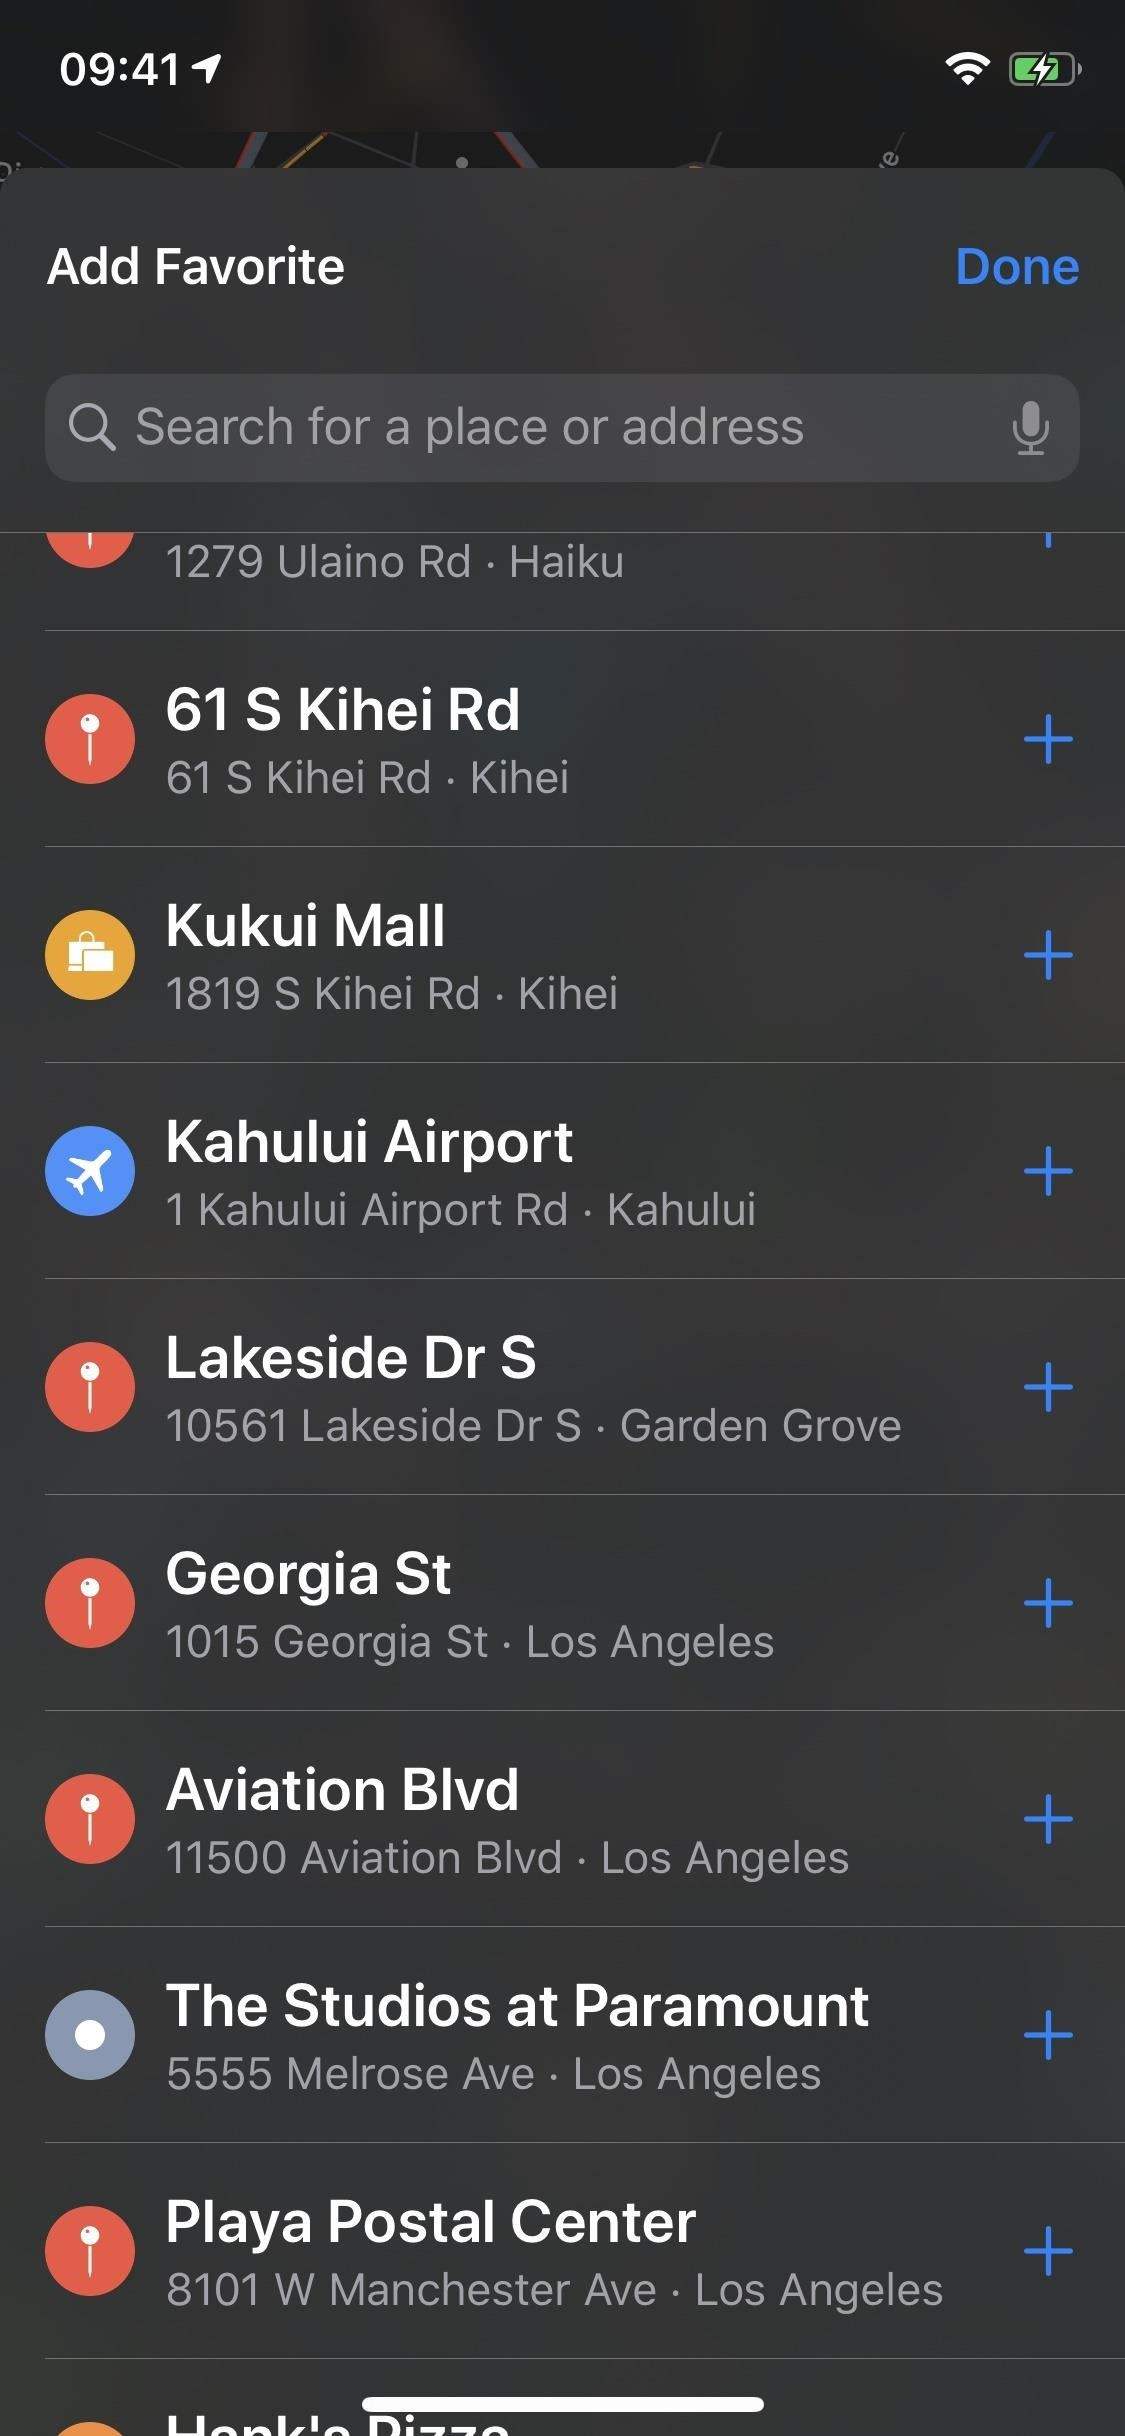 How to Add, Rearrange, Edit & Delete Favorite Locations in Apple Maps in iOS 13